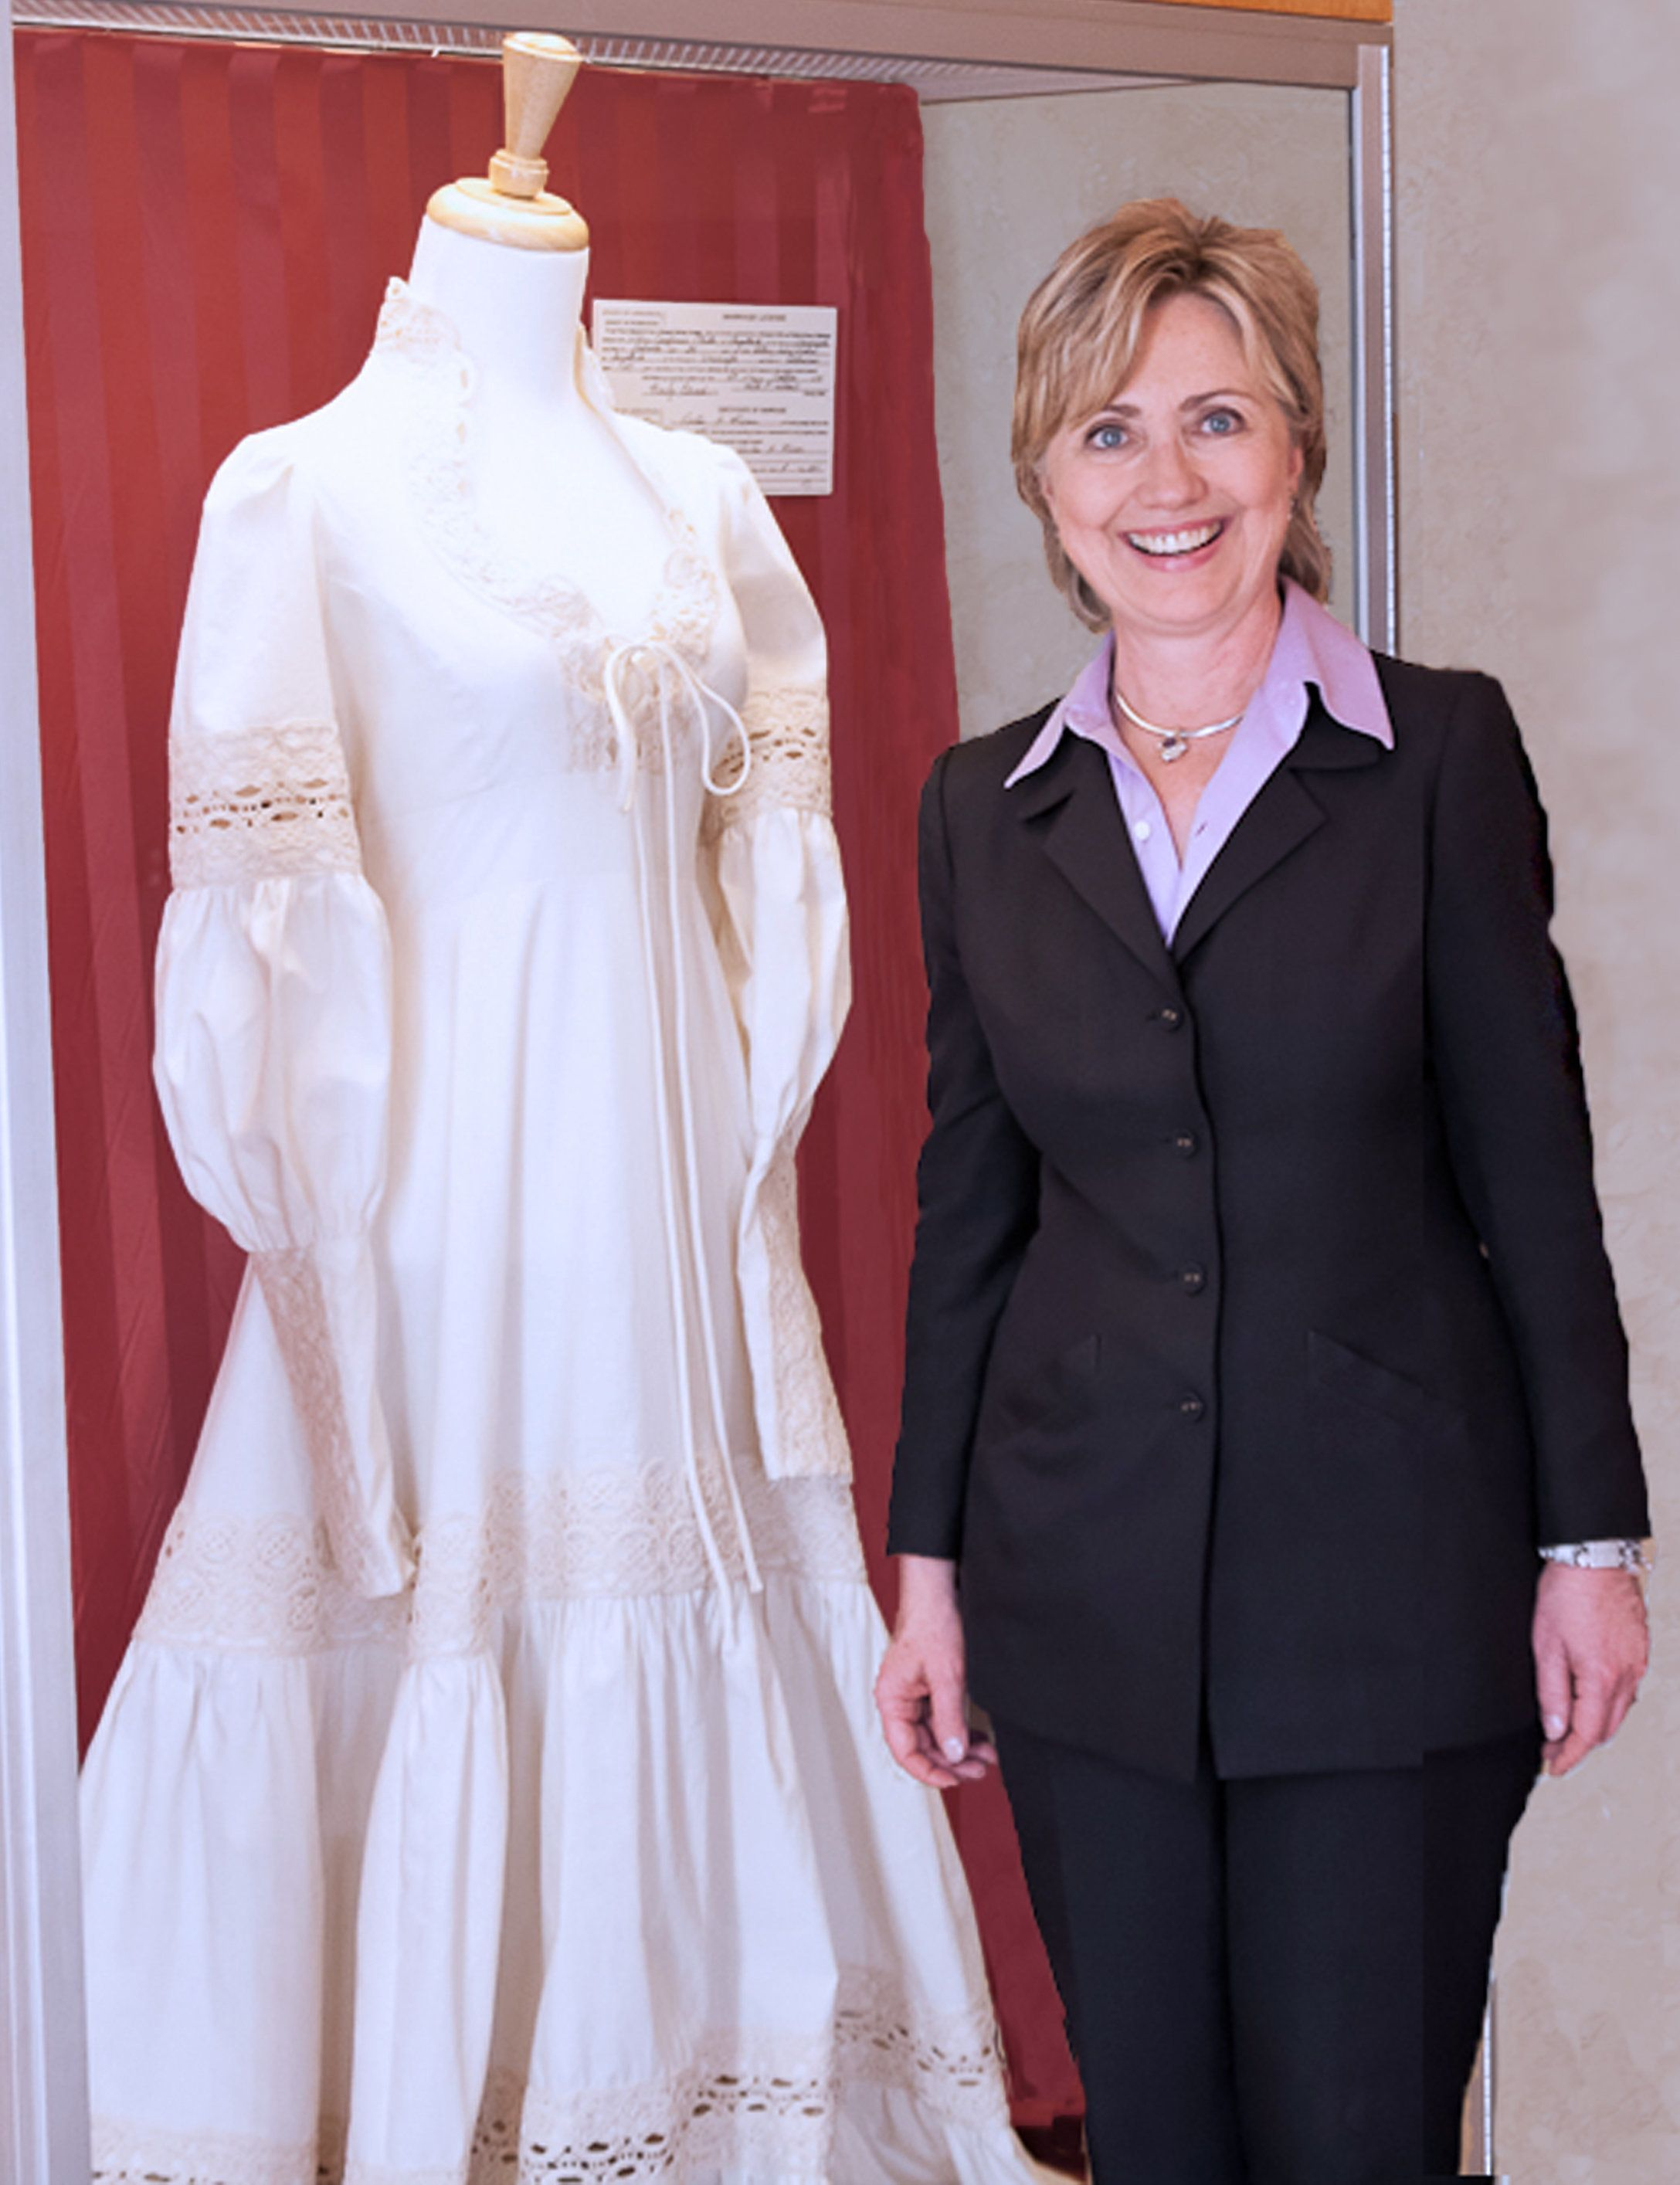 Cheap dresses for wedding guests 2018 presidential candidates